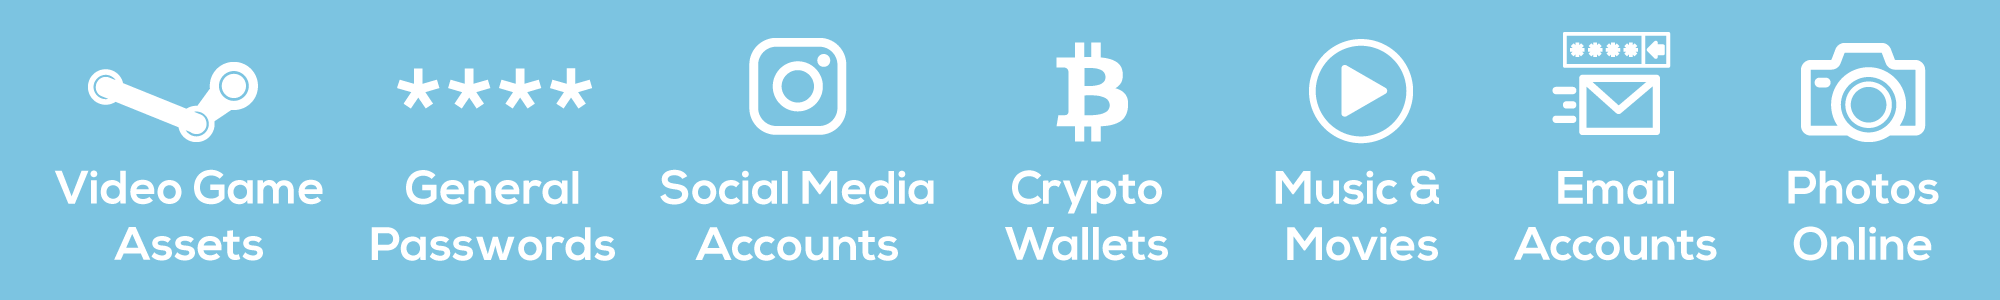 Digital assets like video game assets, general passwords, social media accounts, crypto wallets, music and movies, email accounts, and online photos